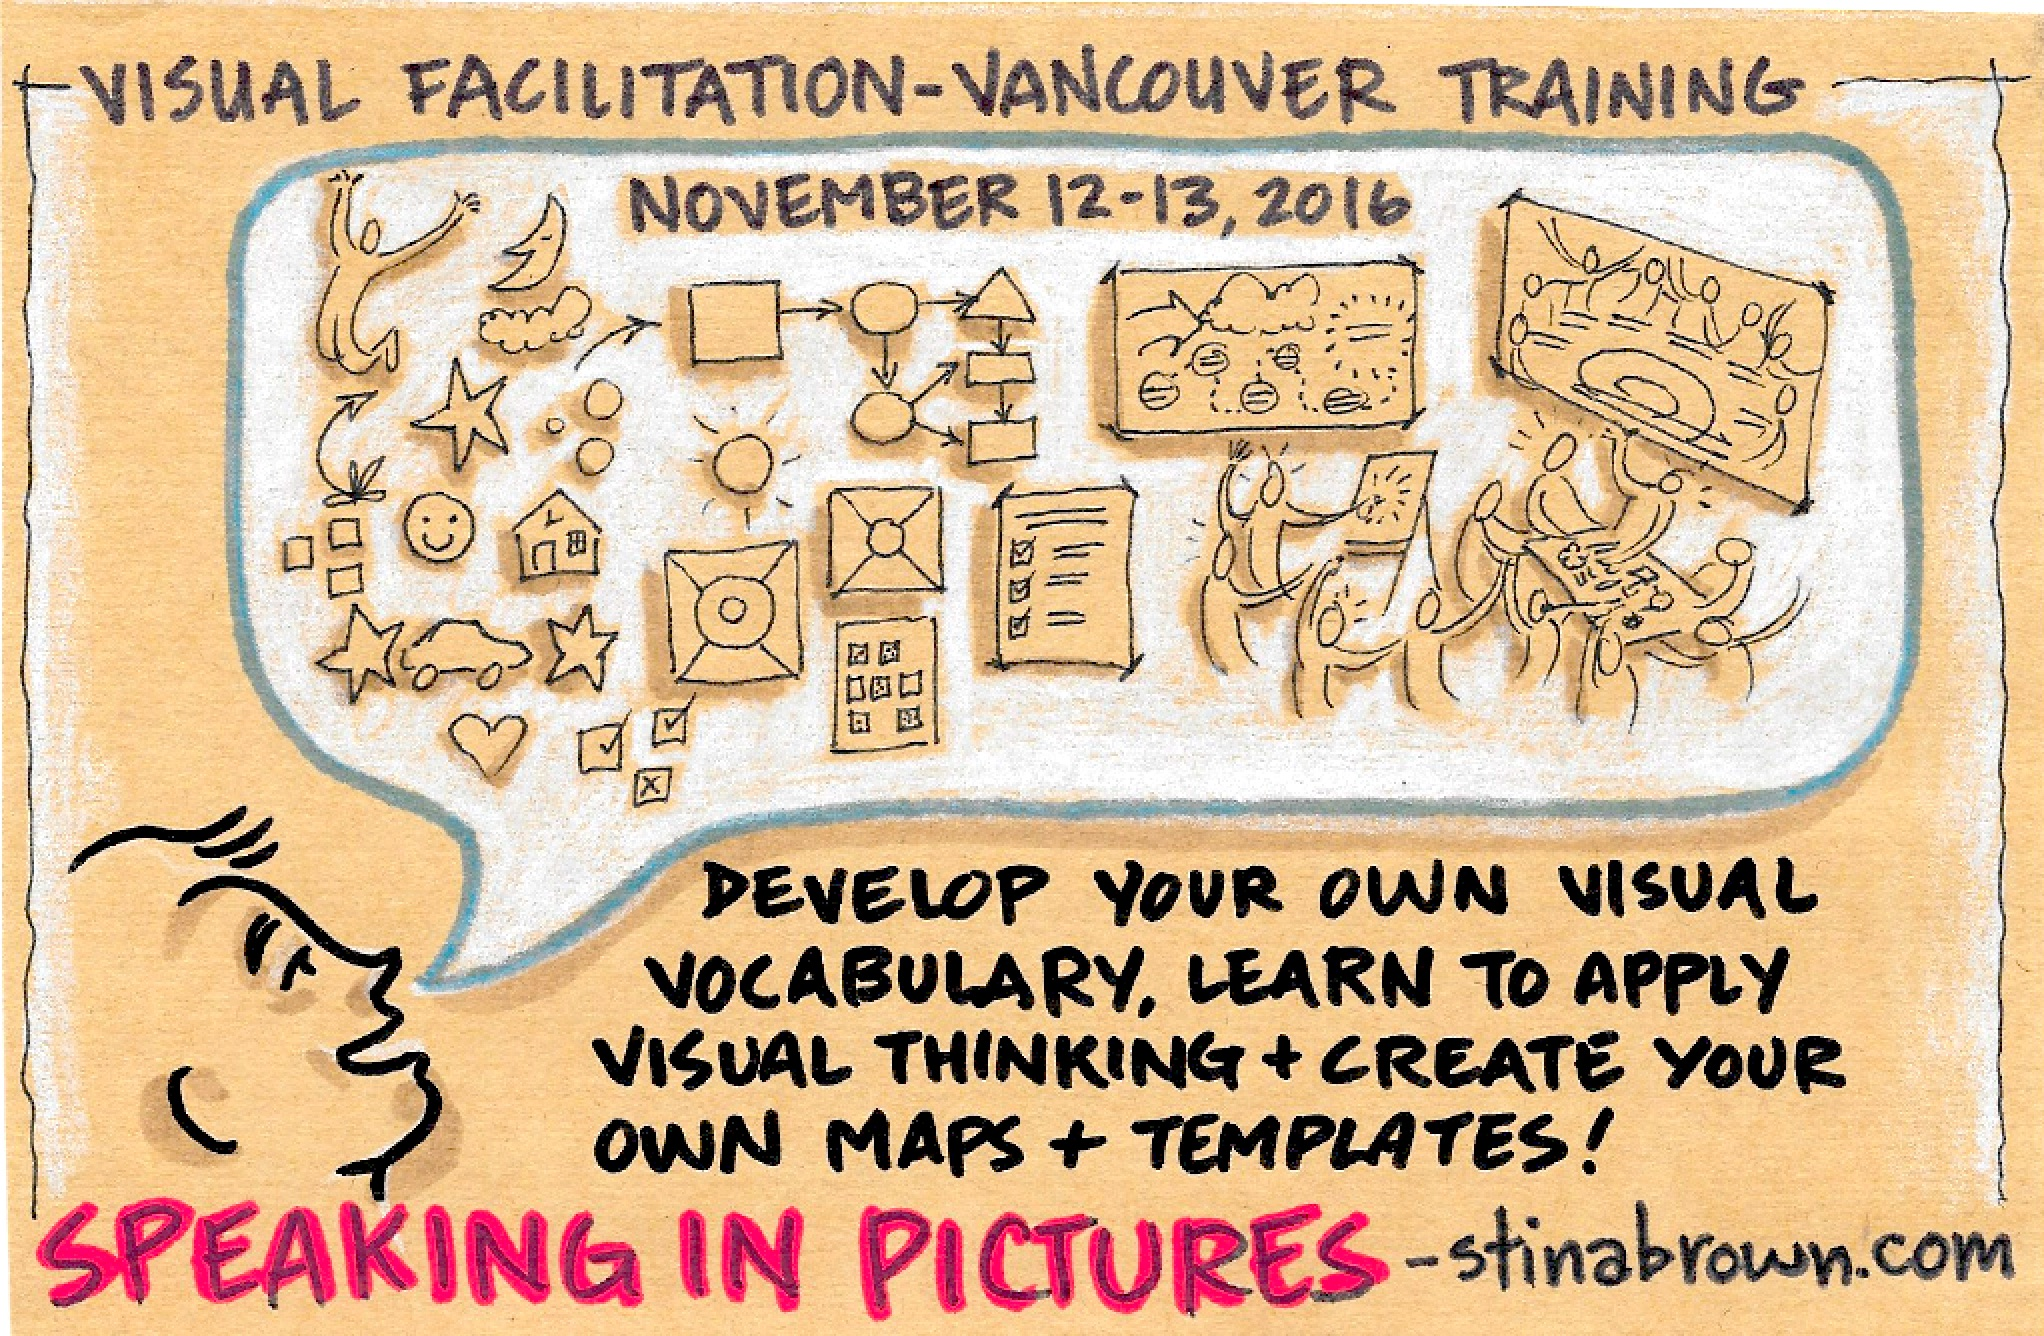 Speaking in pictures 2 day visual facilitation training vancouver speaking in pictures 2 day visual facilitation training vancouver maxwellsz